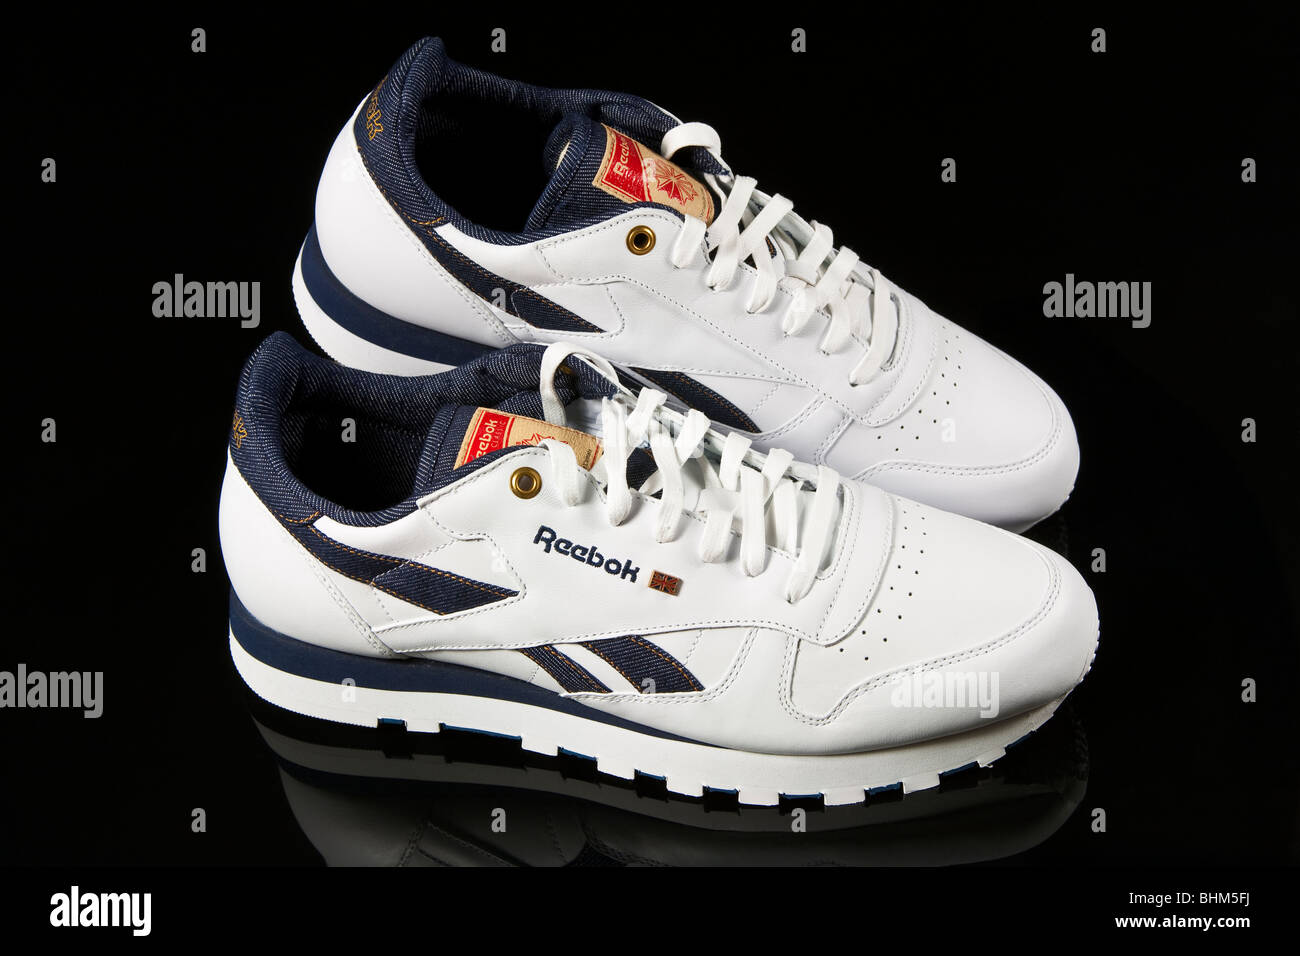 ad0e740fa012 A pair of brand new Reebok training shoes Stock Photo  28102918 - Alamy